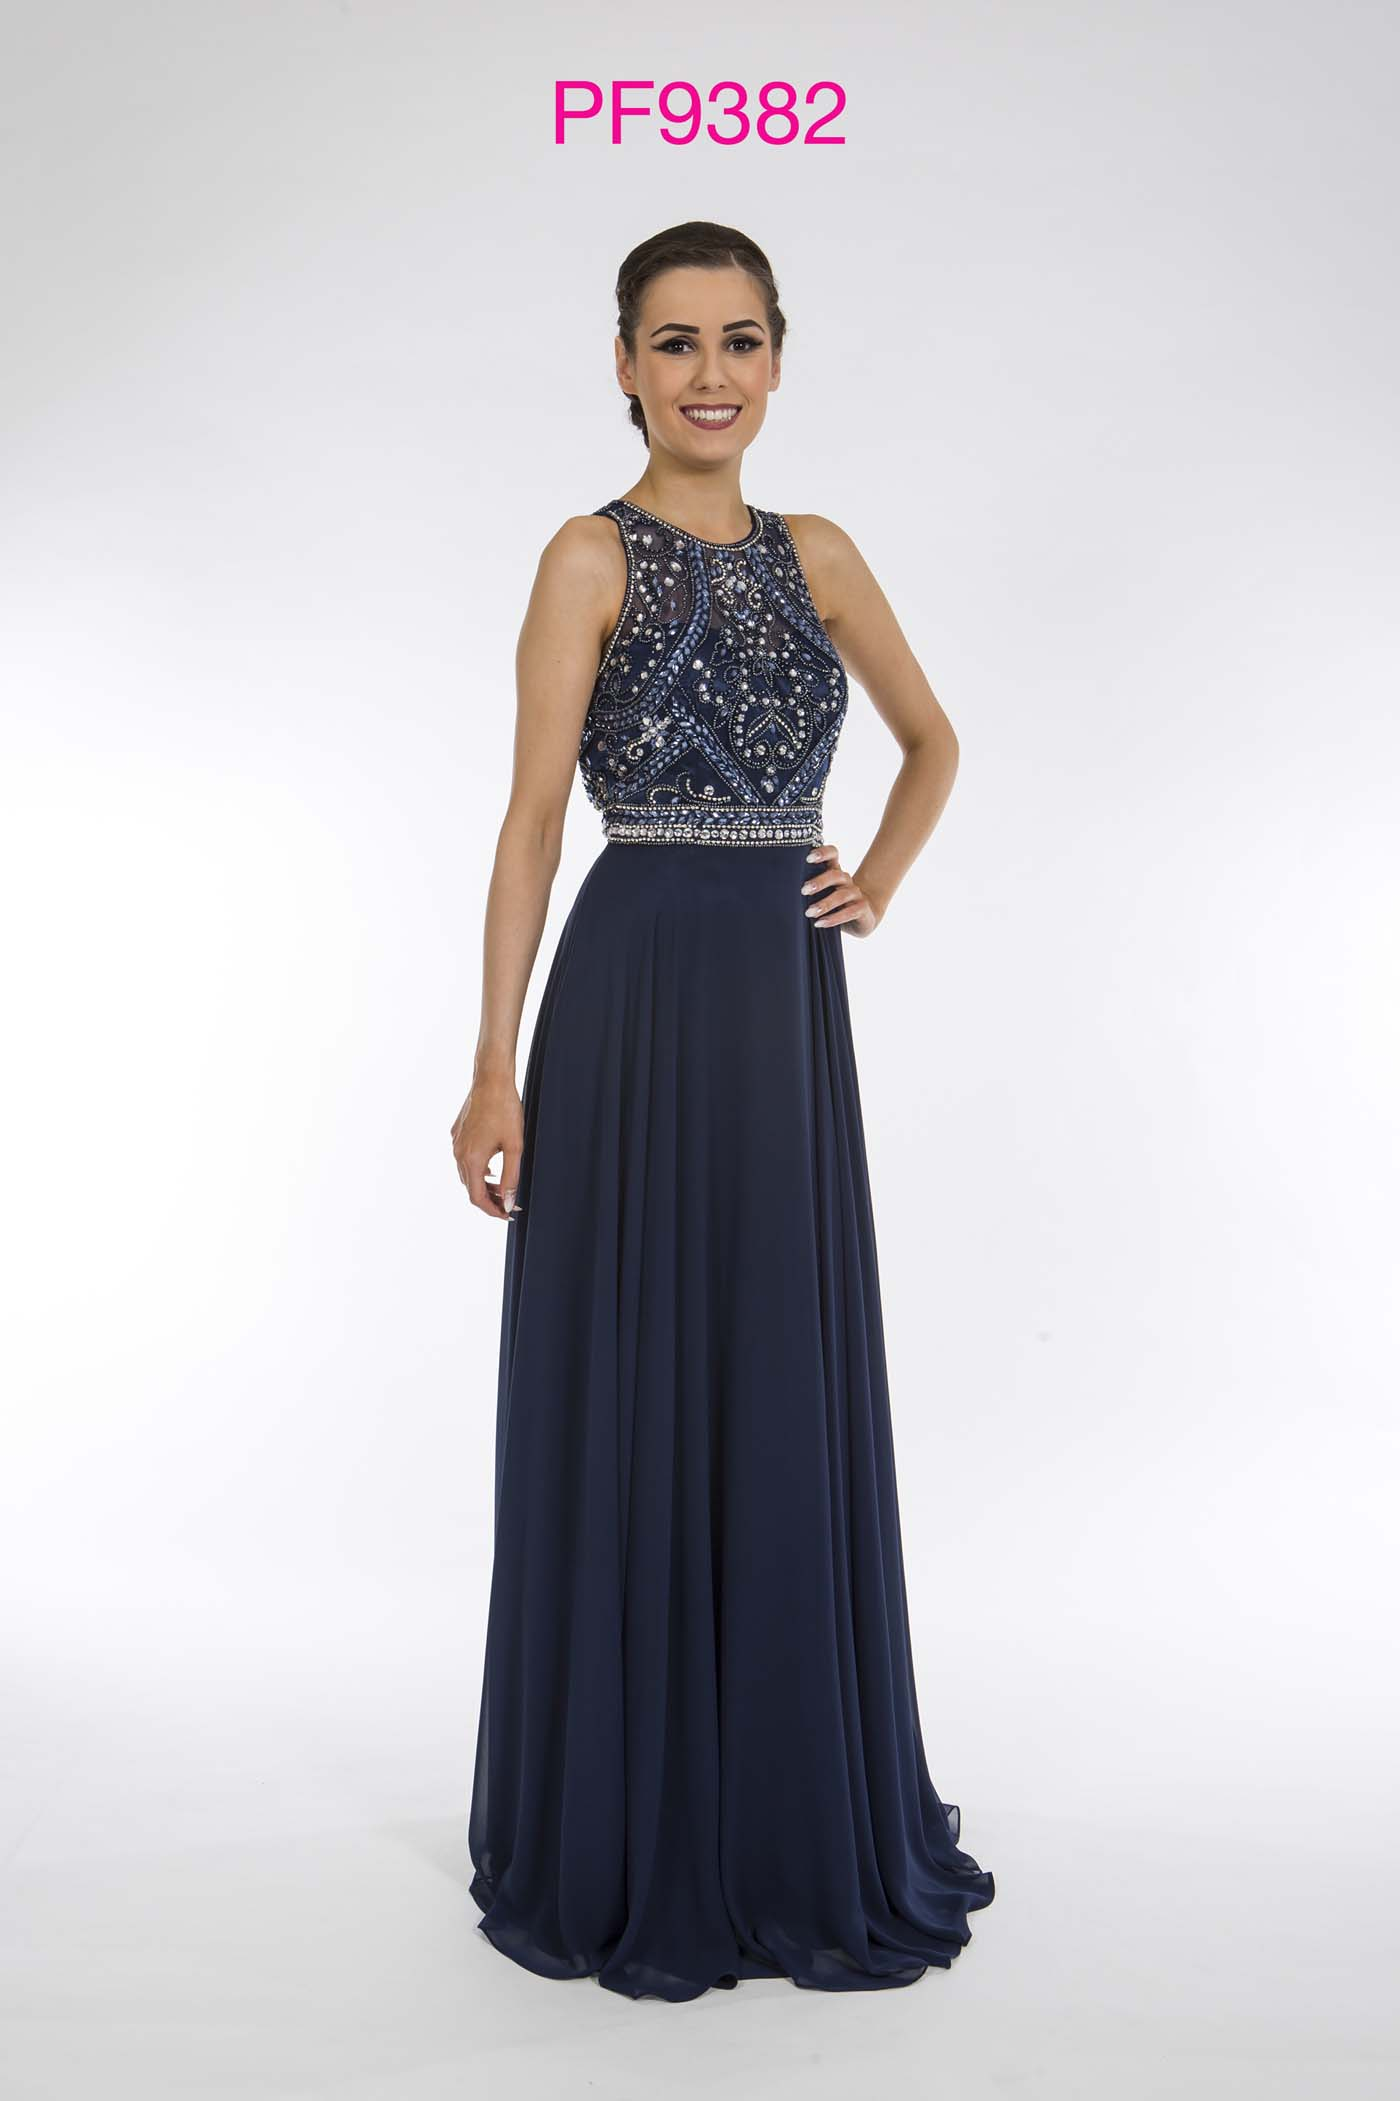 Prom girl wearing navy chiffon full length gown with full skirt and silver beaded bodice.